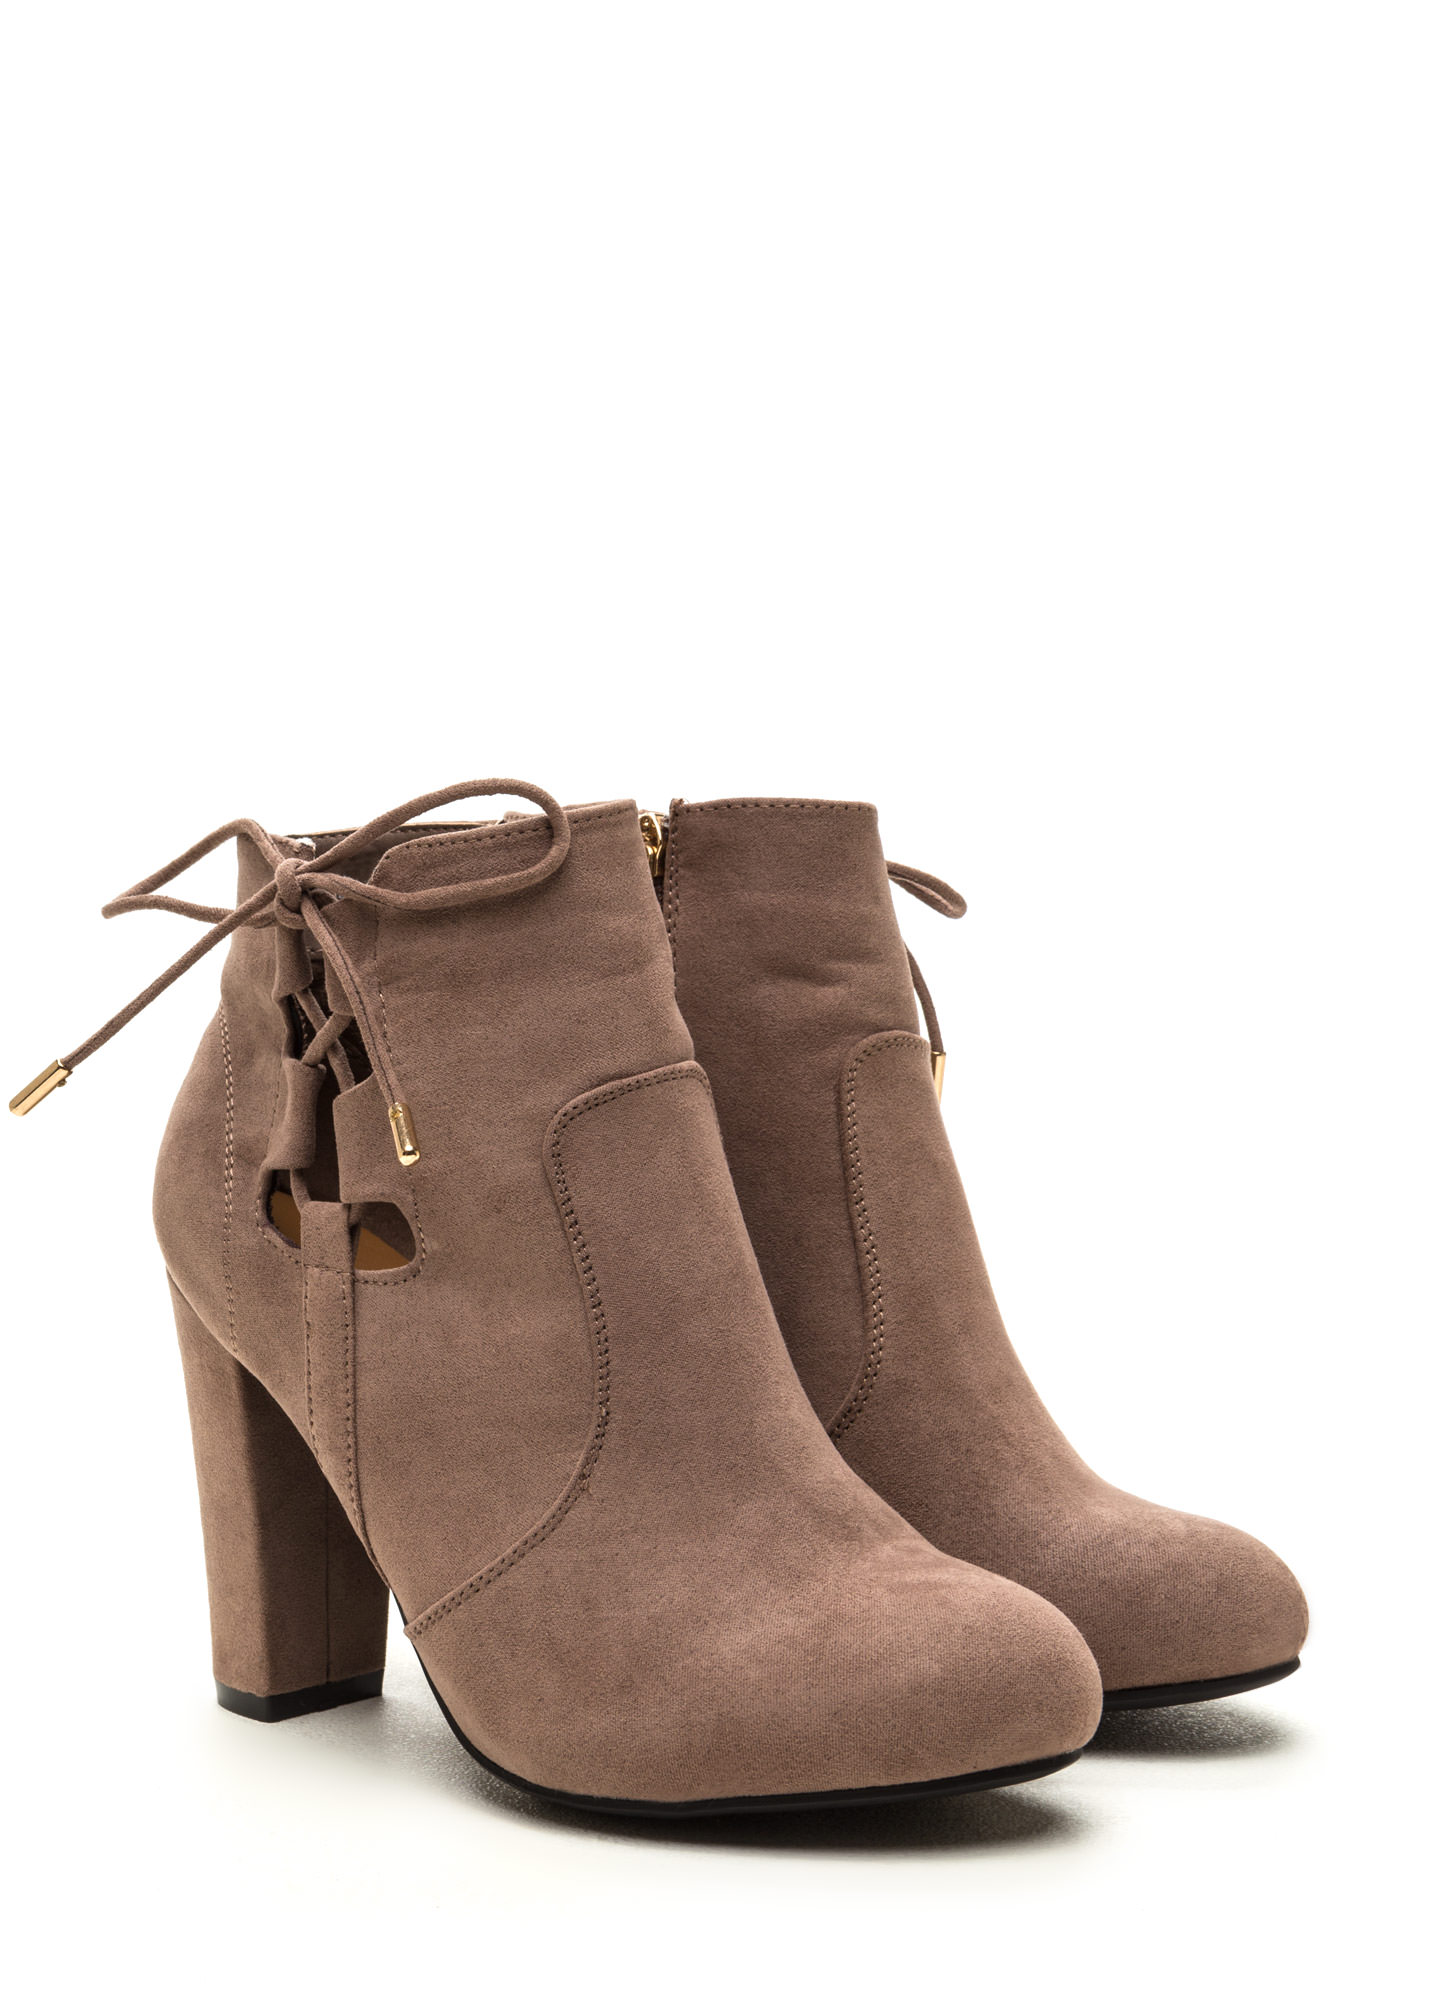 Head To Toe Lace-Up Chunky Booties LTTAUPE